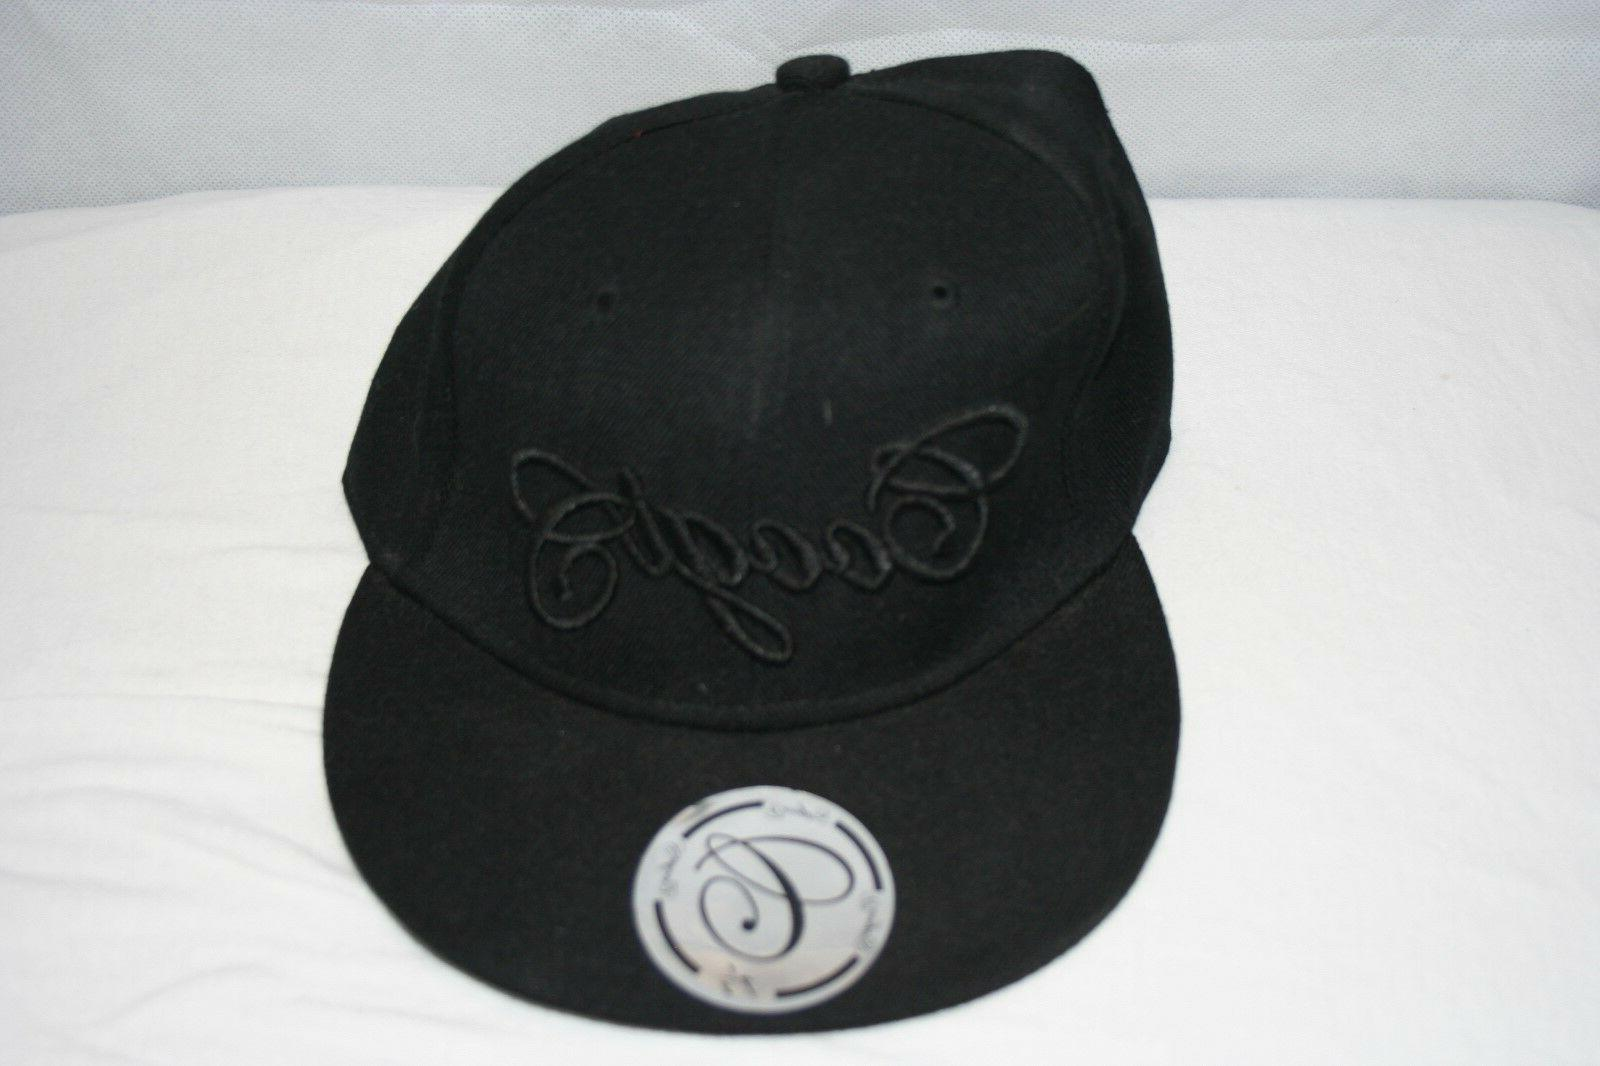 cap black fitted hat size 7 1